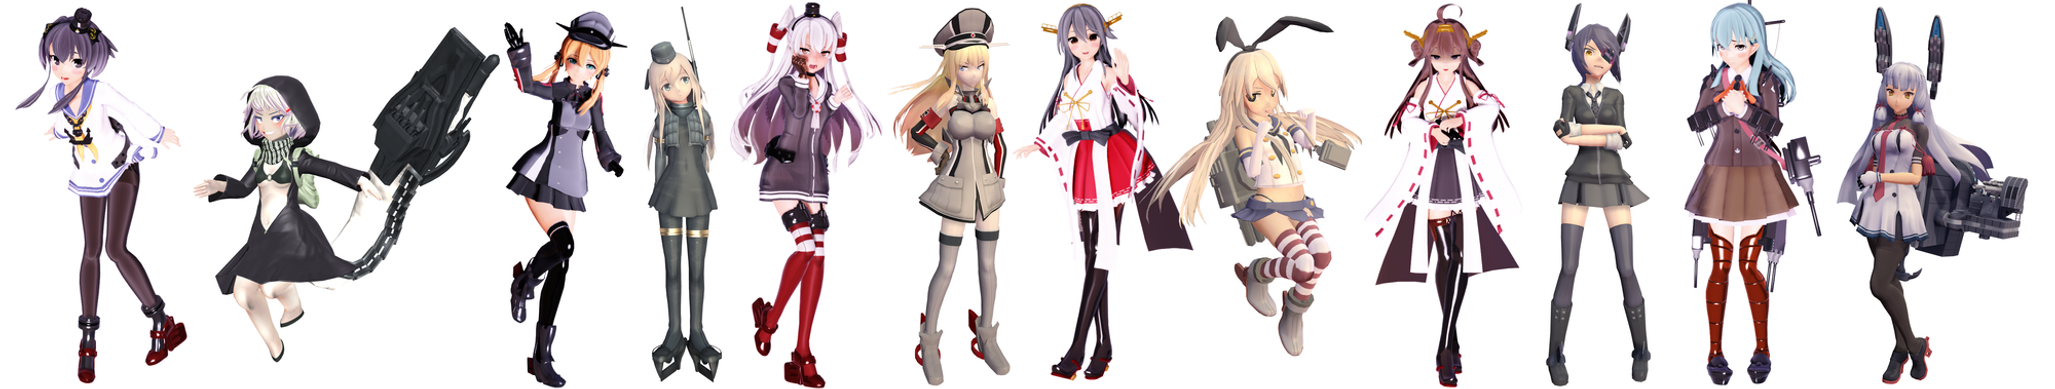 MMD Kancolle poses collab by RaiR-211